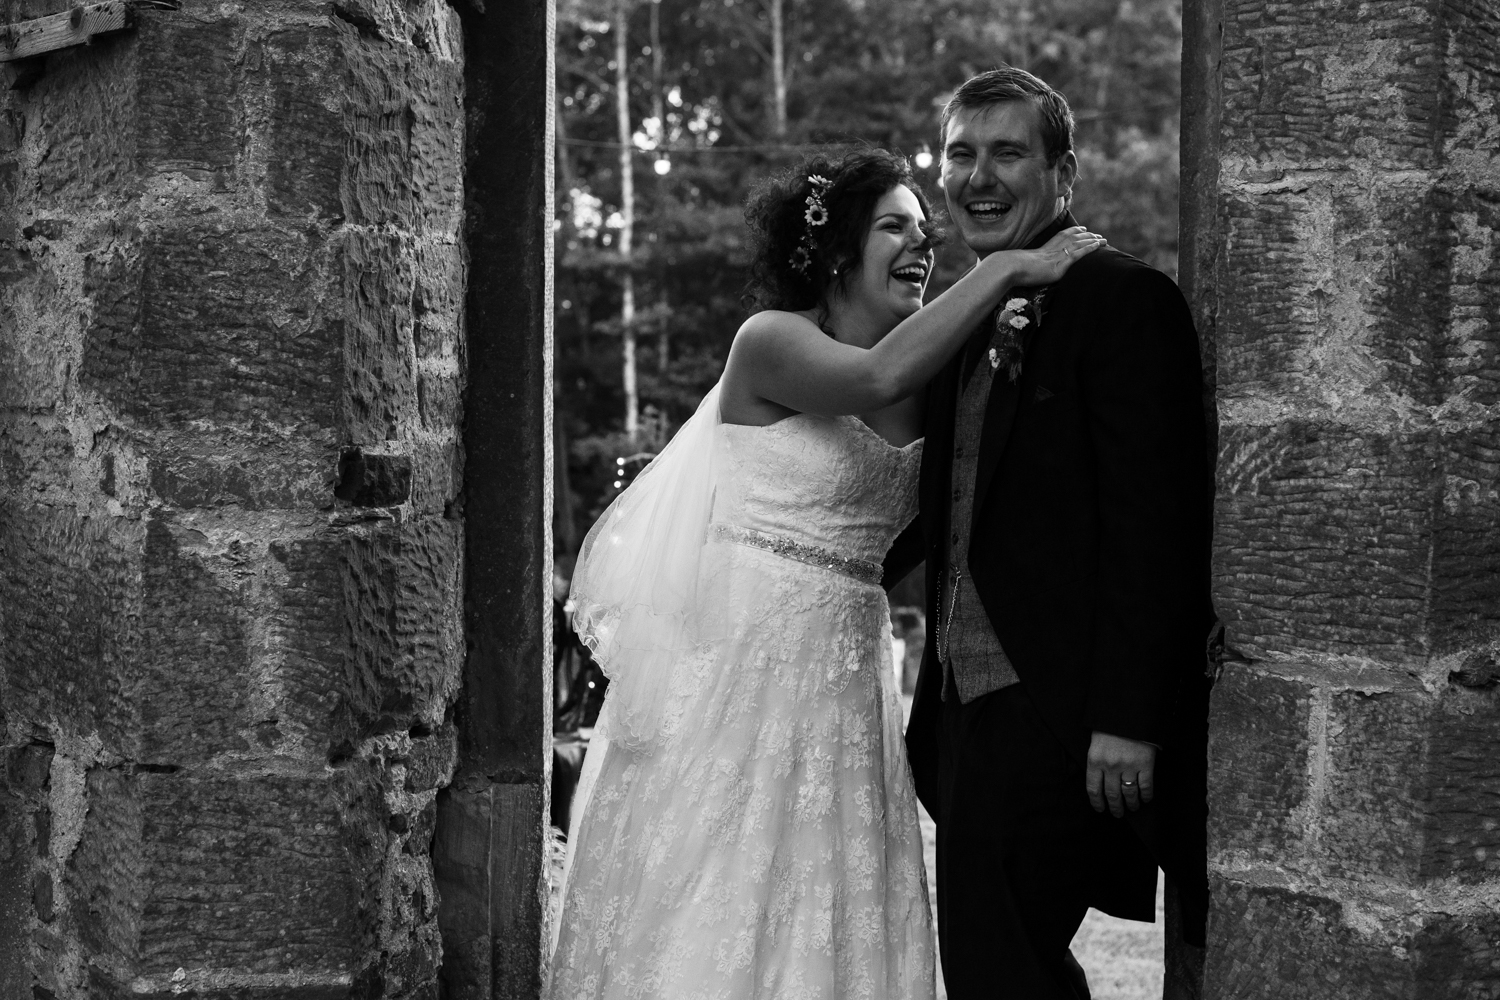 Black and white image of the bride and groom making light of the fact that they are having portrait photos